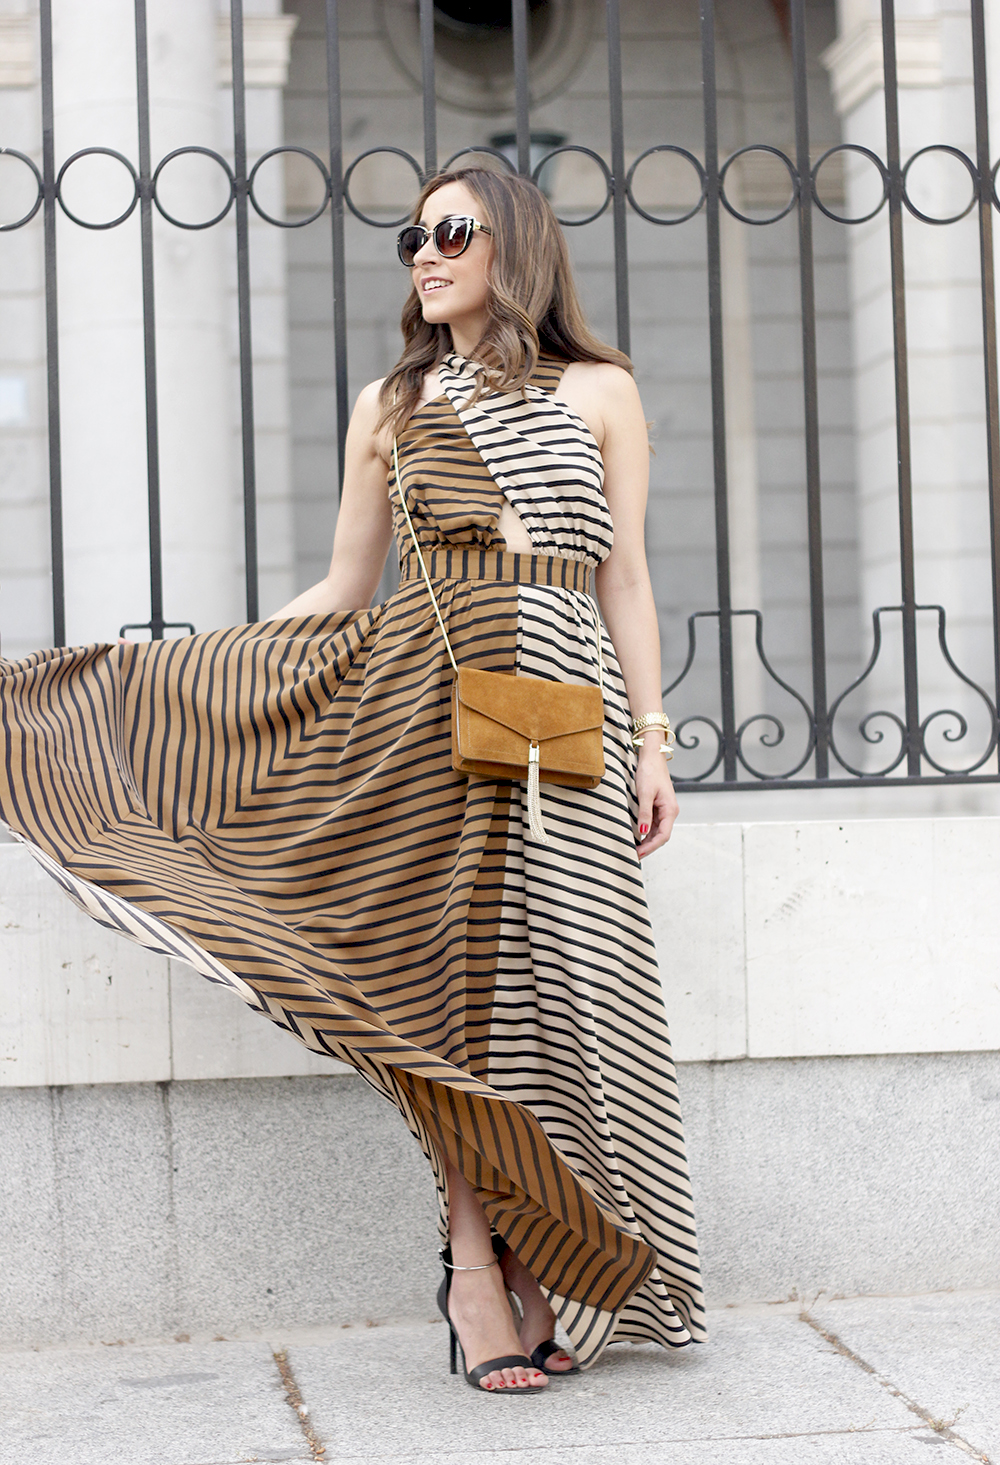 Maxi Striped Dress summer outfit sunnies uterqüe black sandals style fashion06